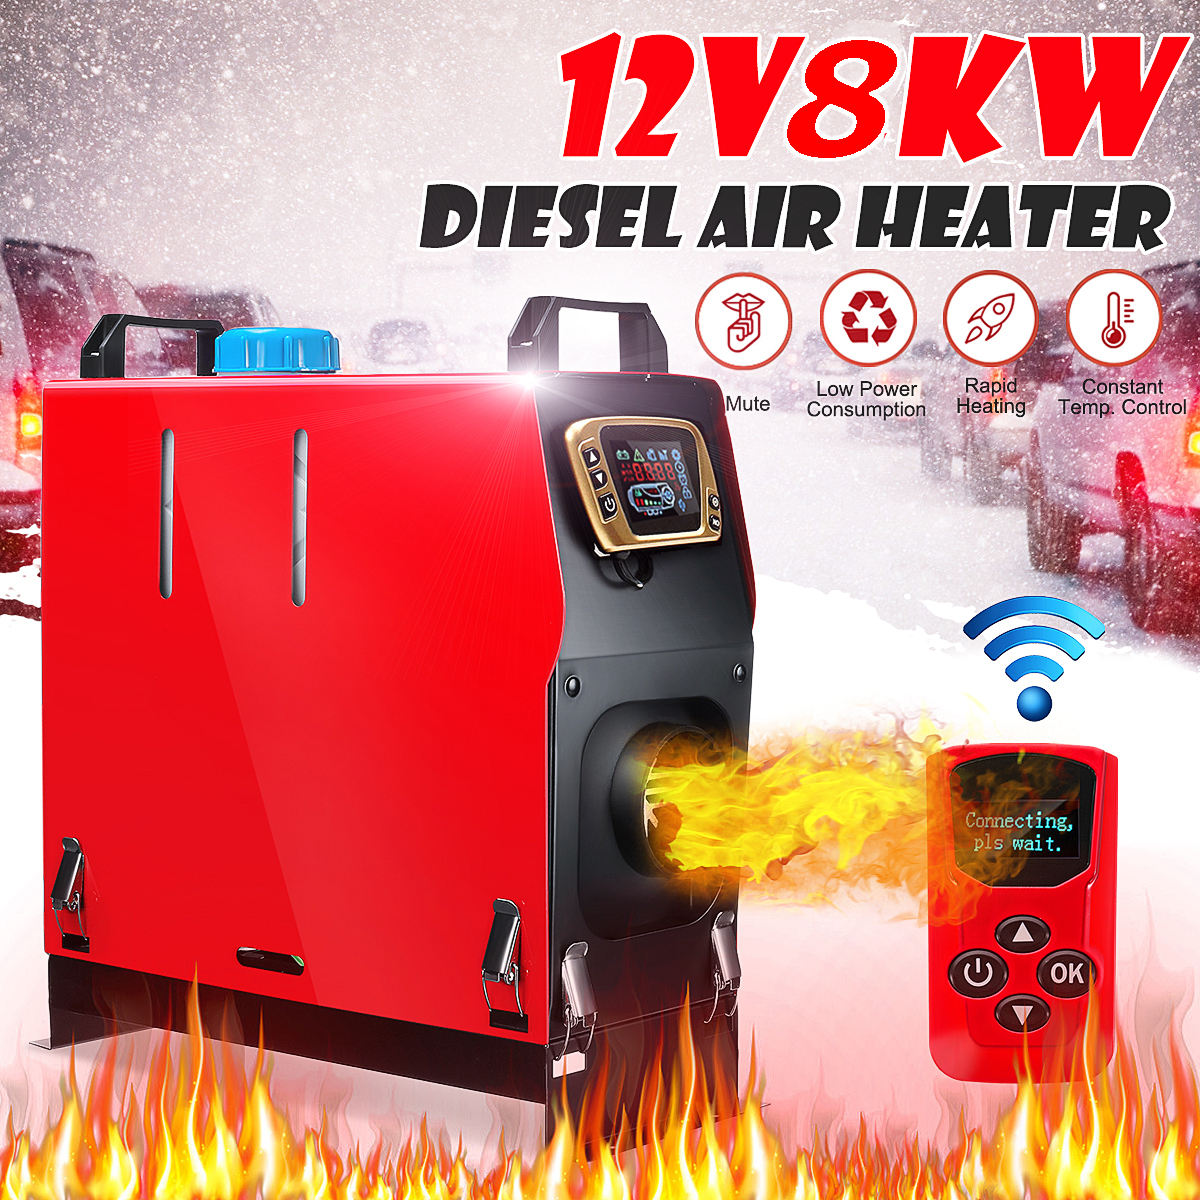 All In One Diesel Air Heater 12V 8KW Car Air Conditioner Digital LCD Monitor Remote Control Car Heater Defrost Diesel Air Heater